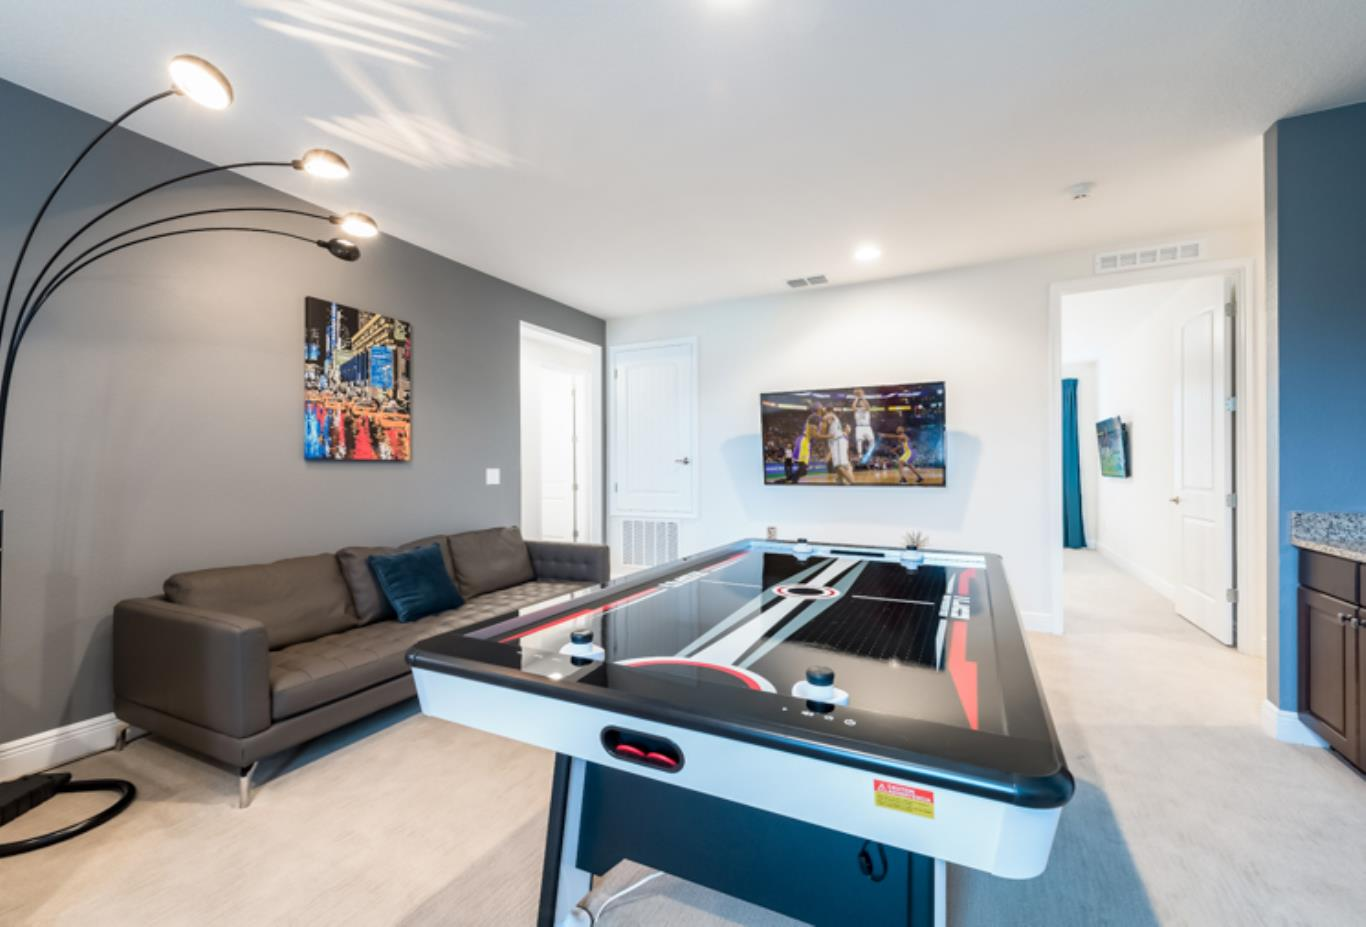 9 bed games room